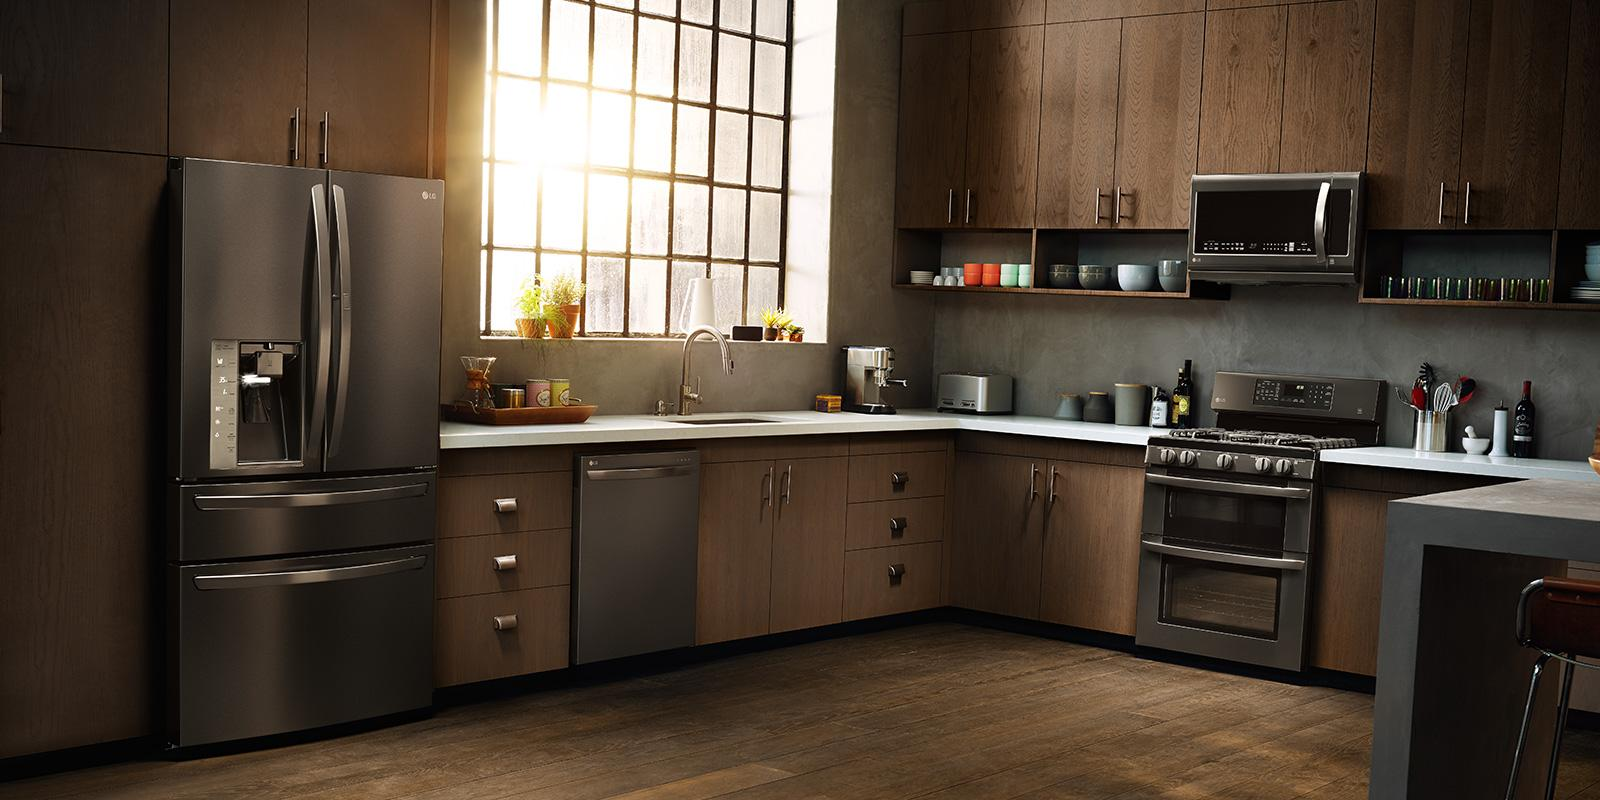 LG kitchen appliances in a modern kitchen, including an oven, a ...